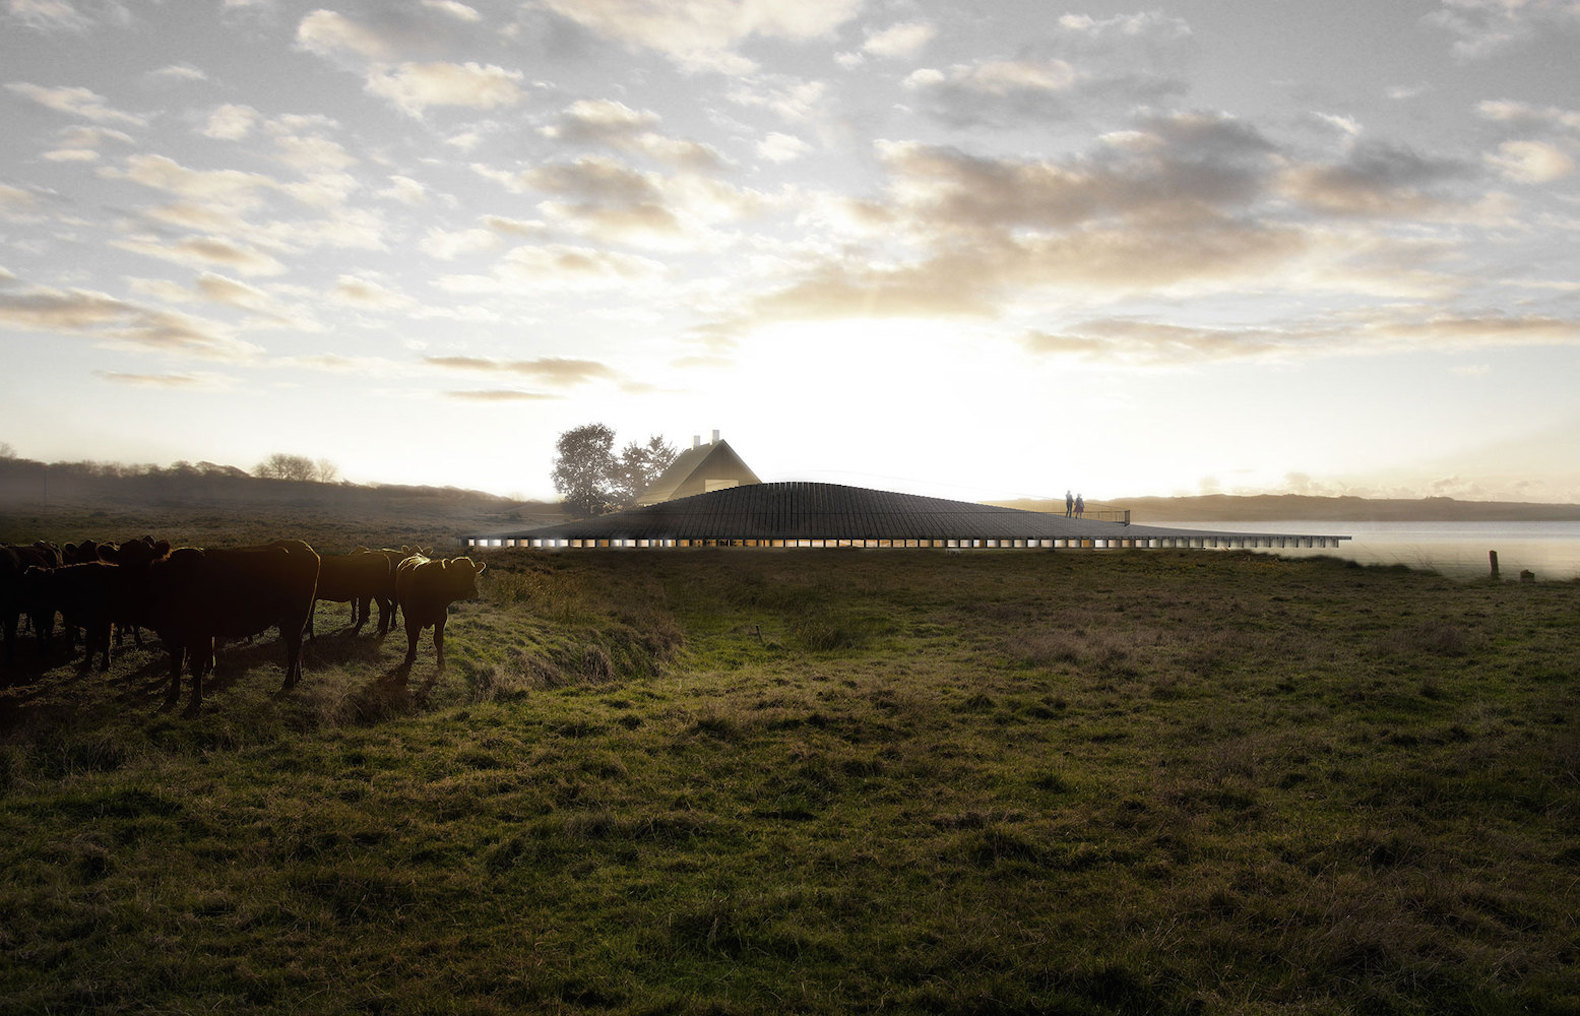 Kalø Castle Visitor Center by Arkitema Architects, Mols Bjerge National Park visitor center, Kalø Castle ruins new visitor center, Kalø Castle Visitor Center, hill-shaped architecture visitor center